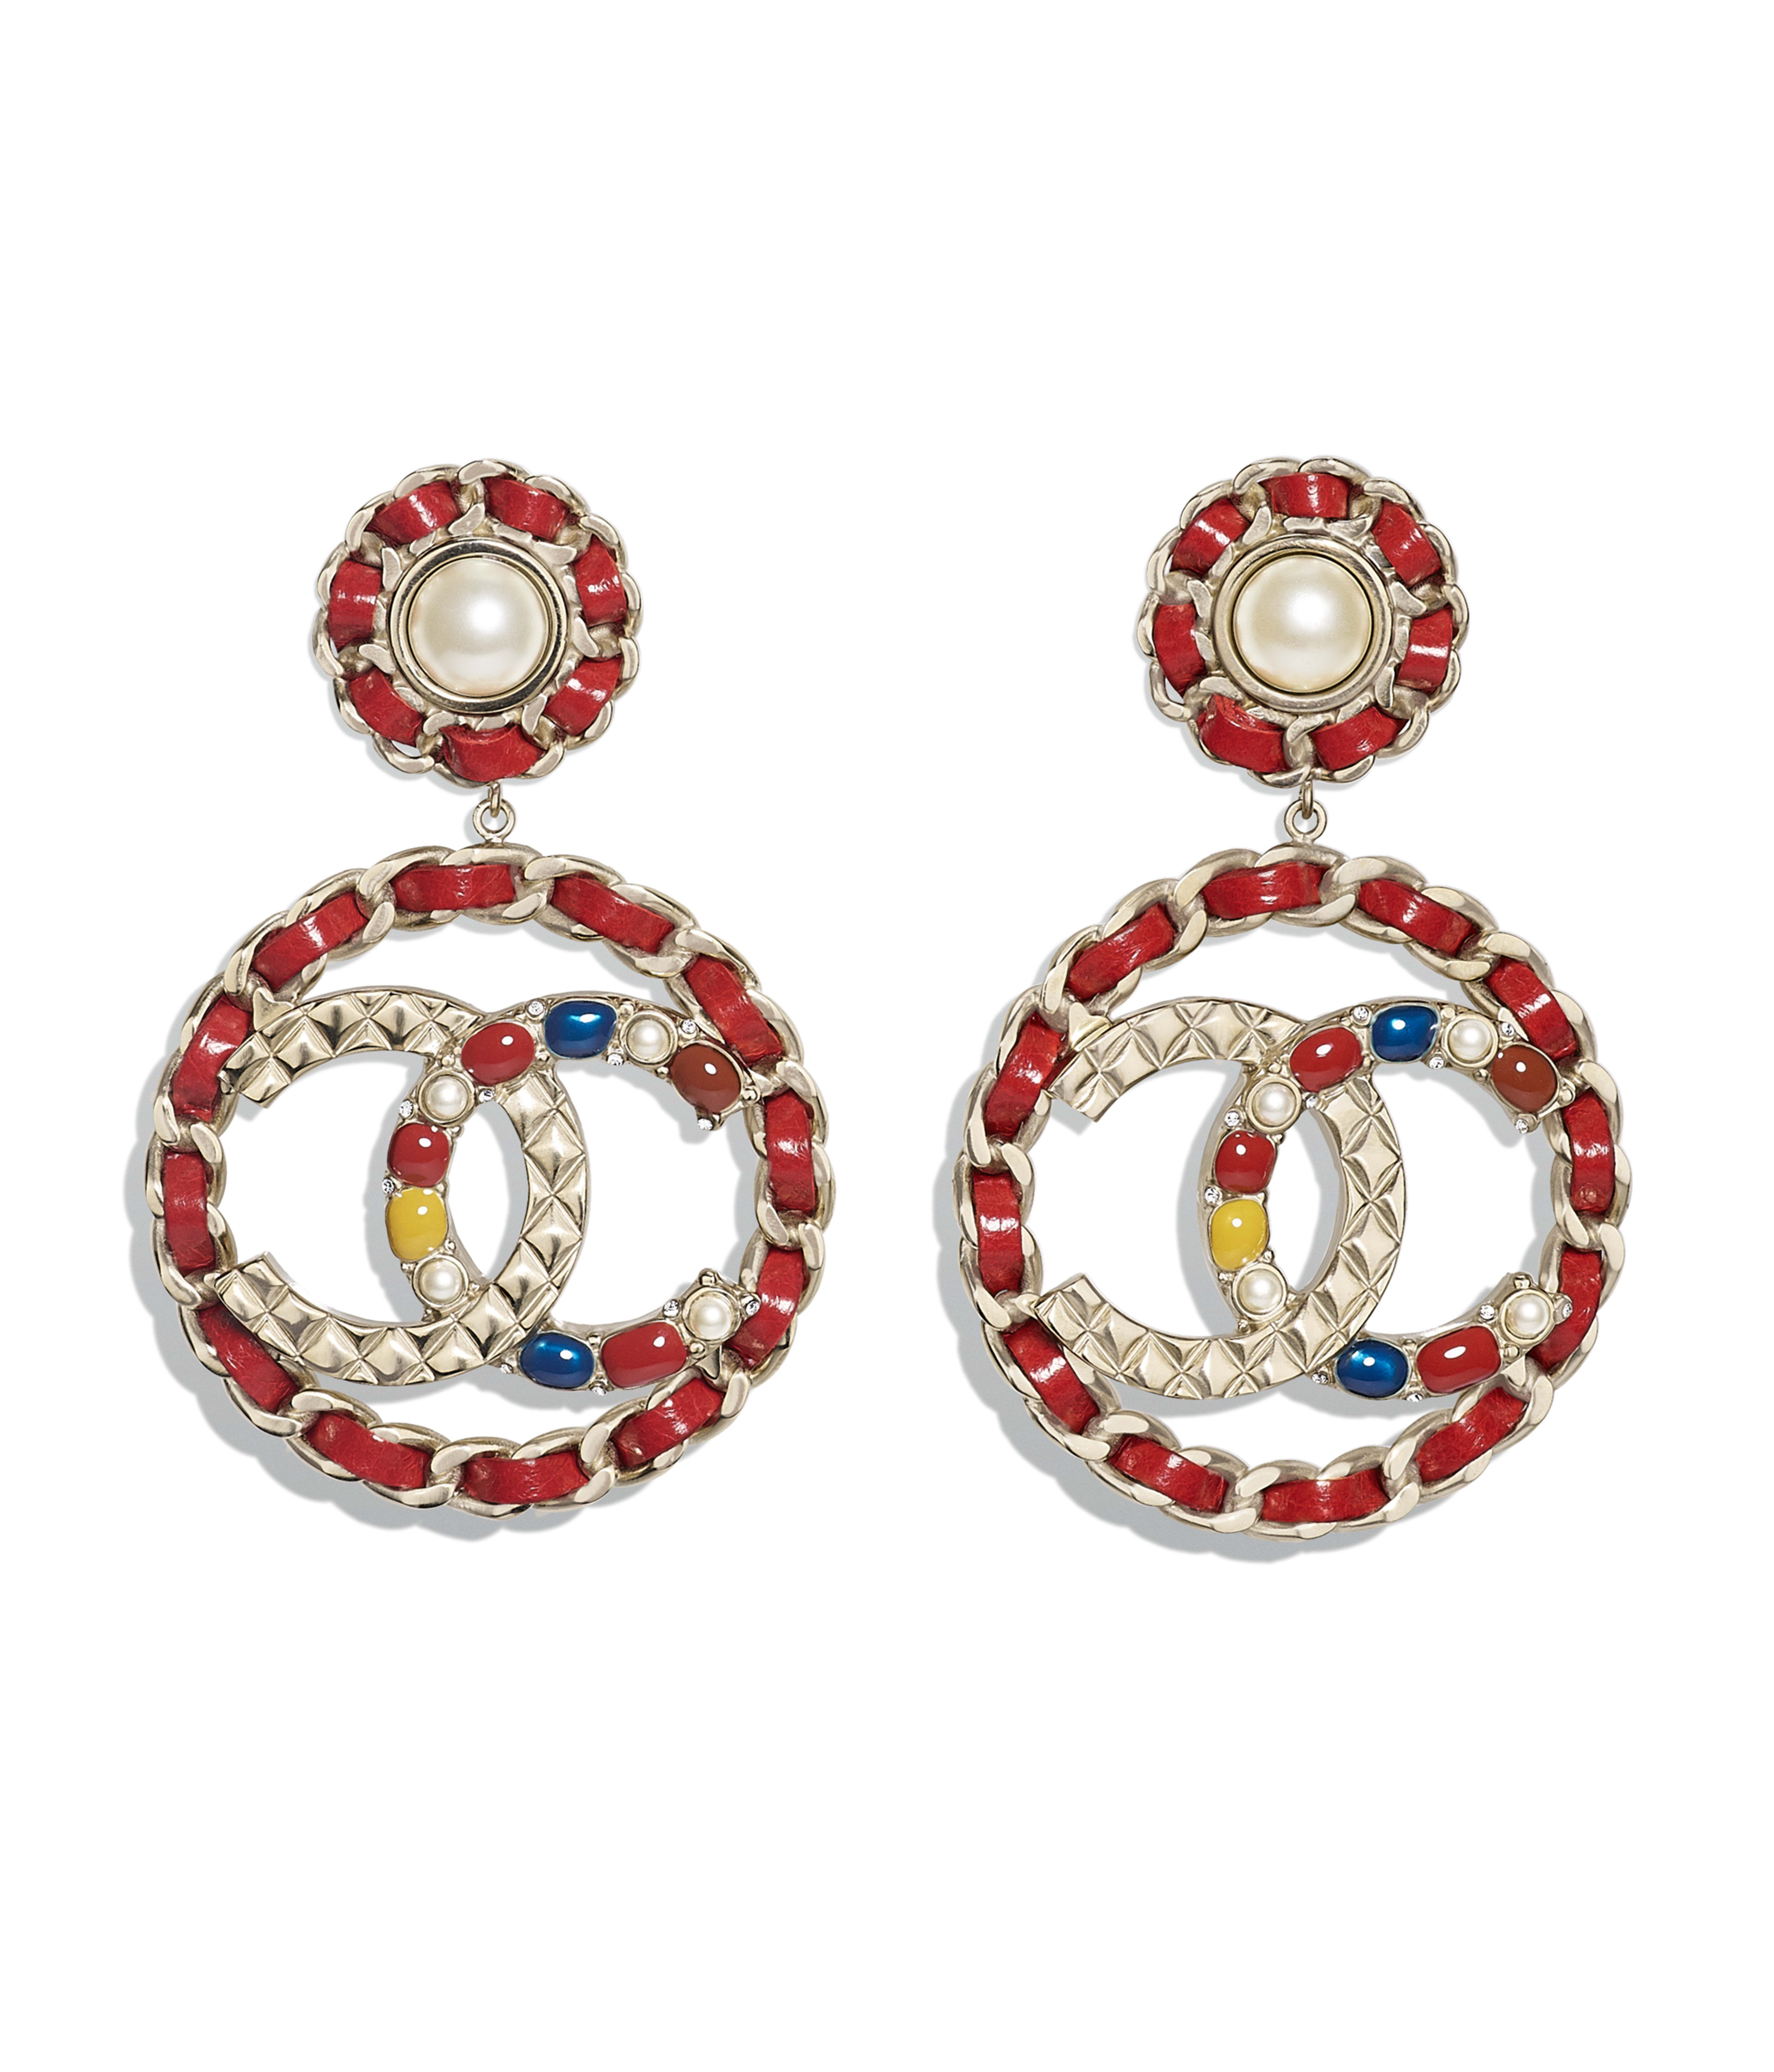 Clip On Earrings Metal Calfskin Str Resin Gold Red Pearly White Yellow Blue Ref Ab0017y47387z8814